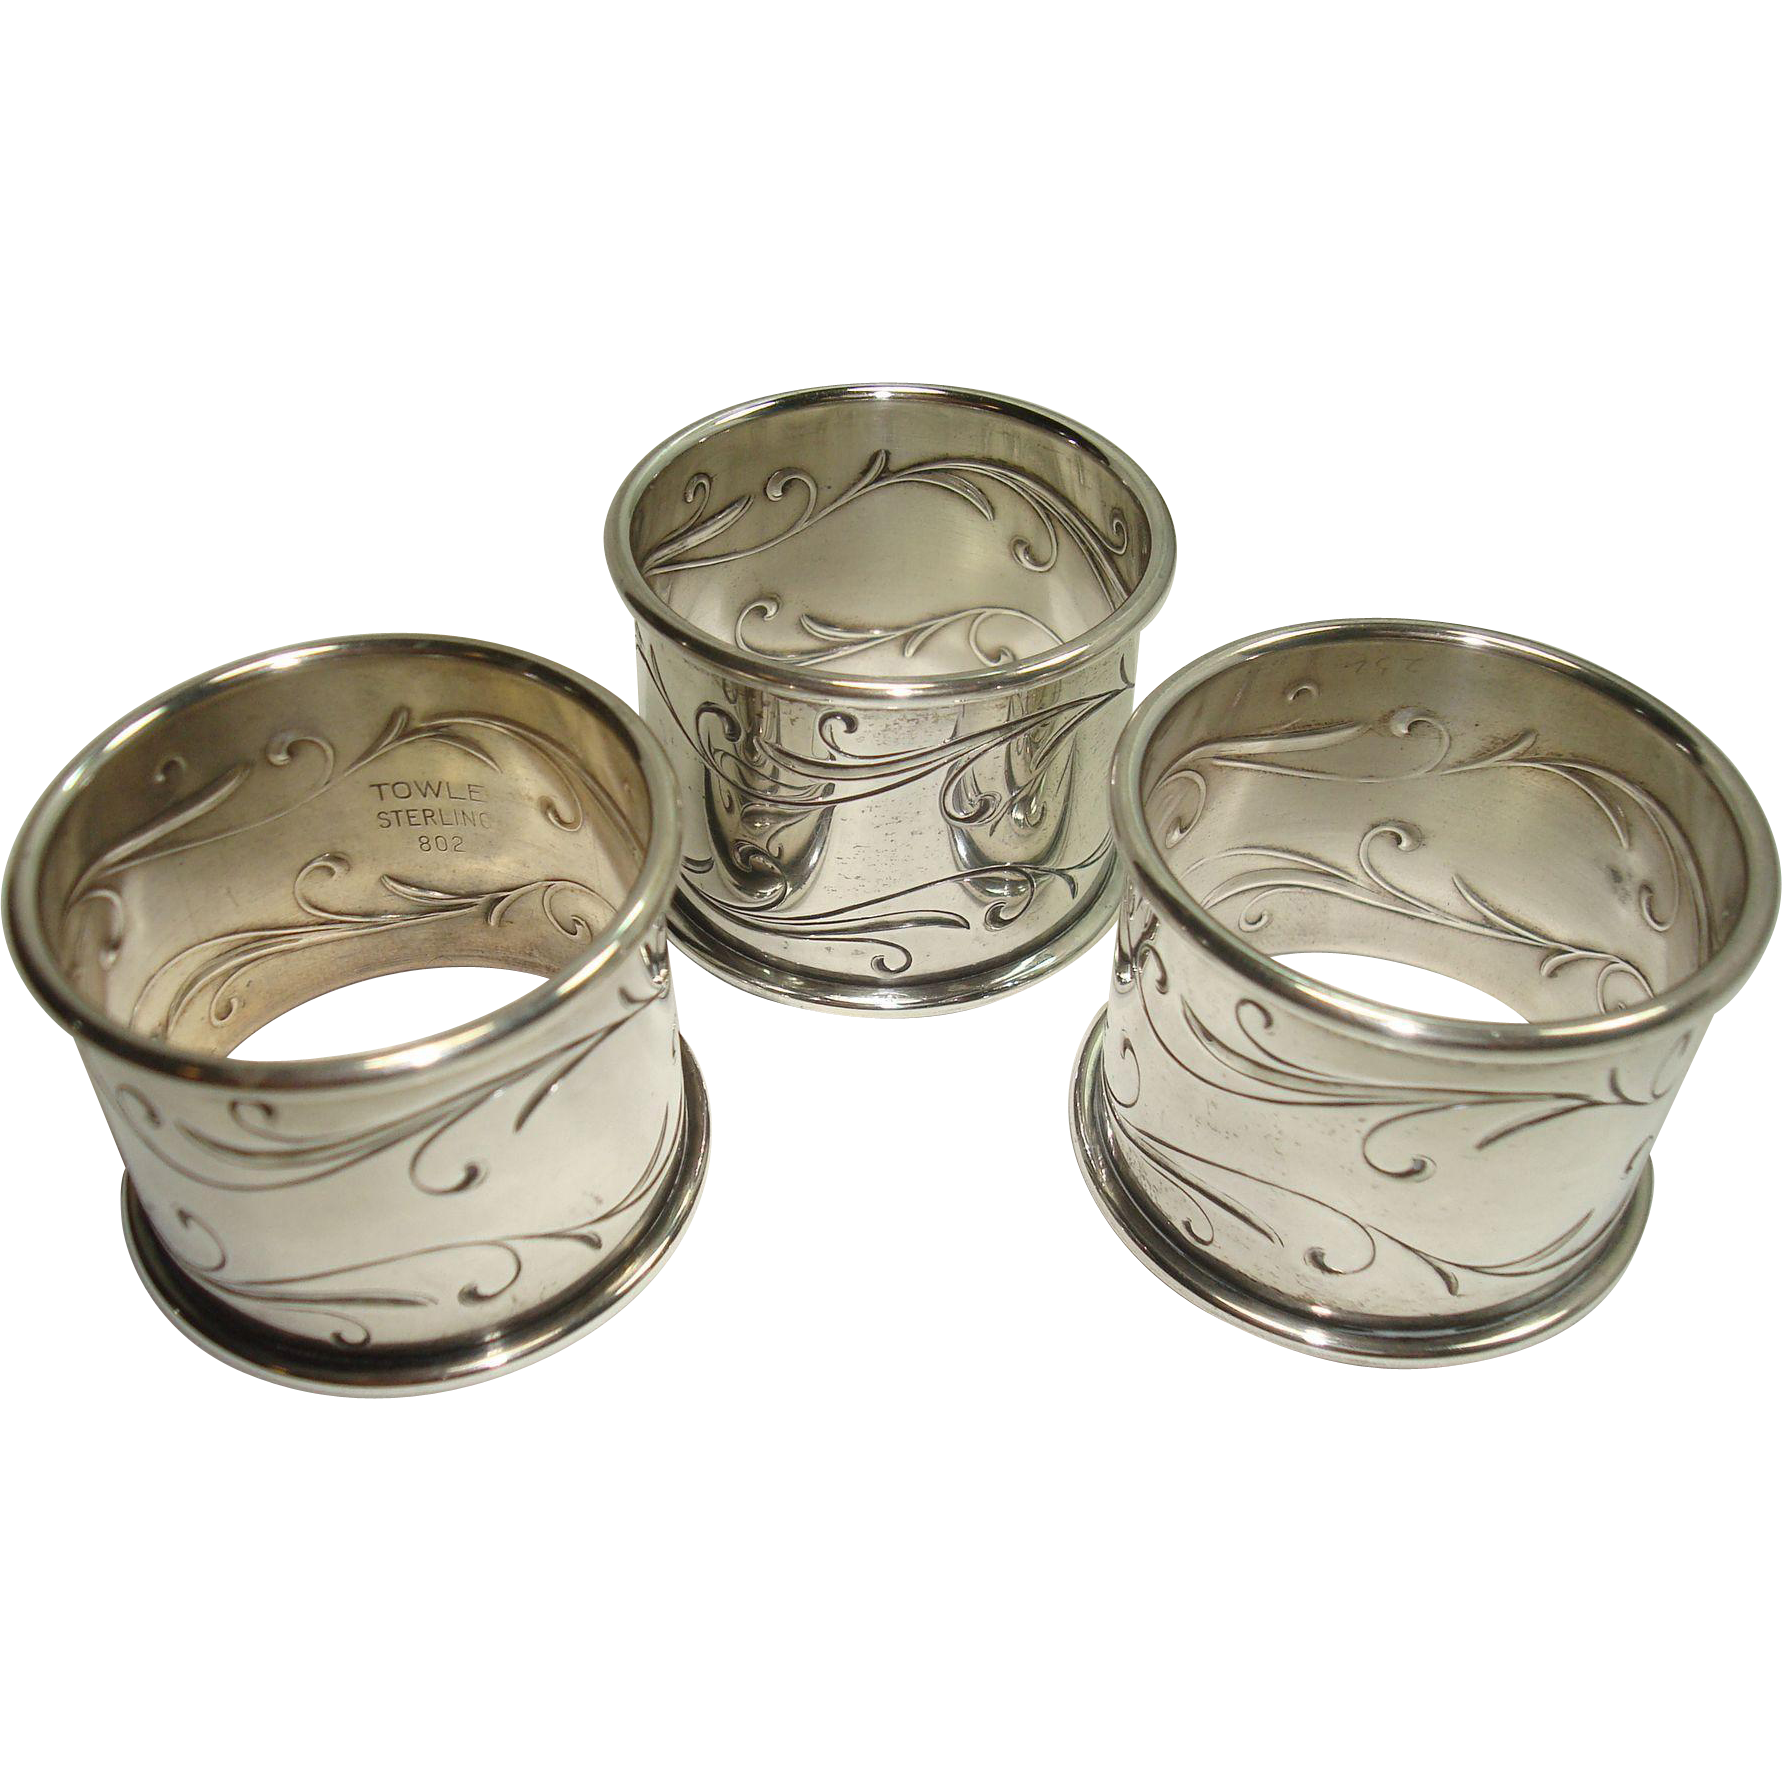 Set of Three Towle Sterling Scroll Napkin Rings c. 1940